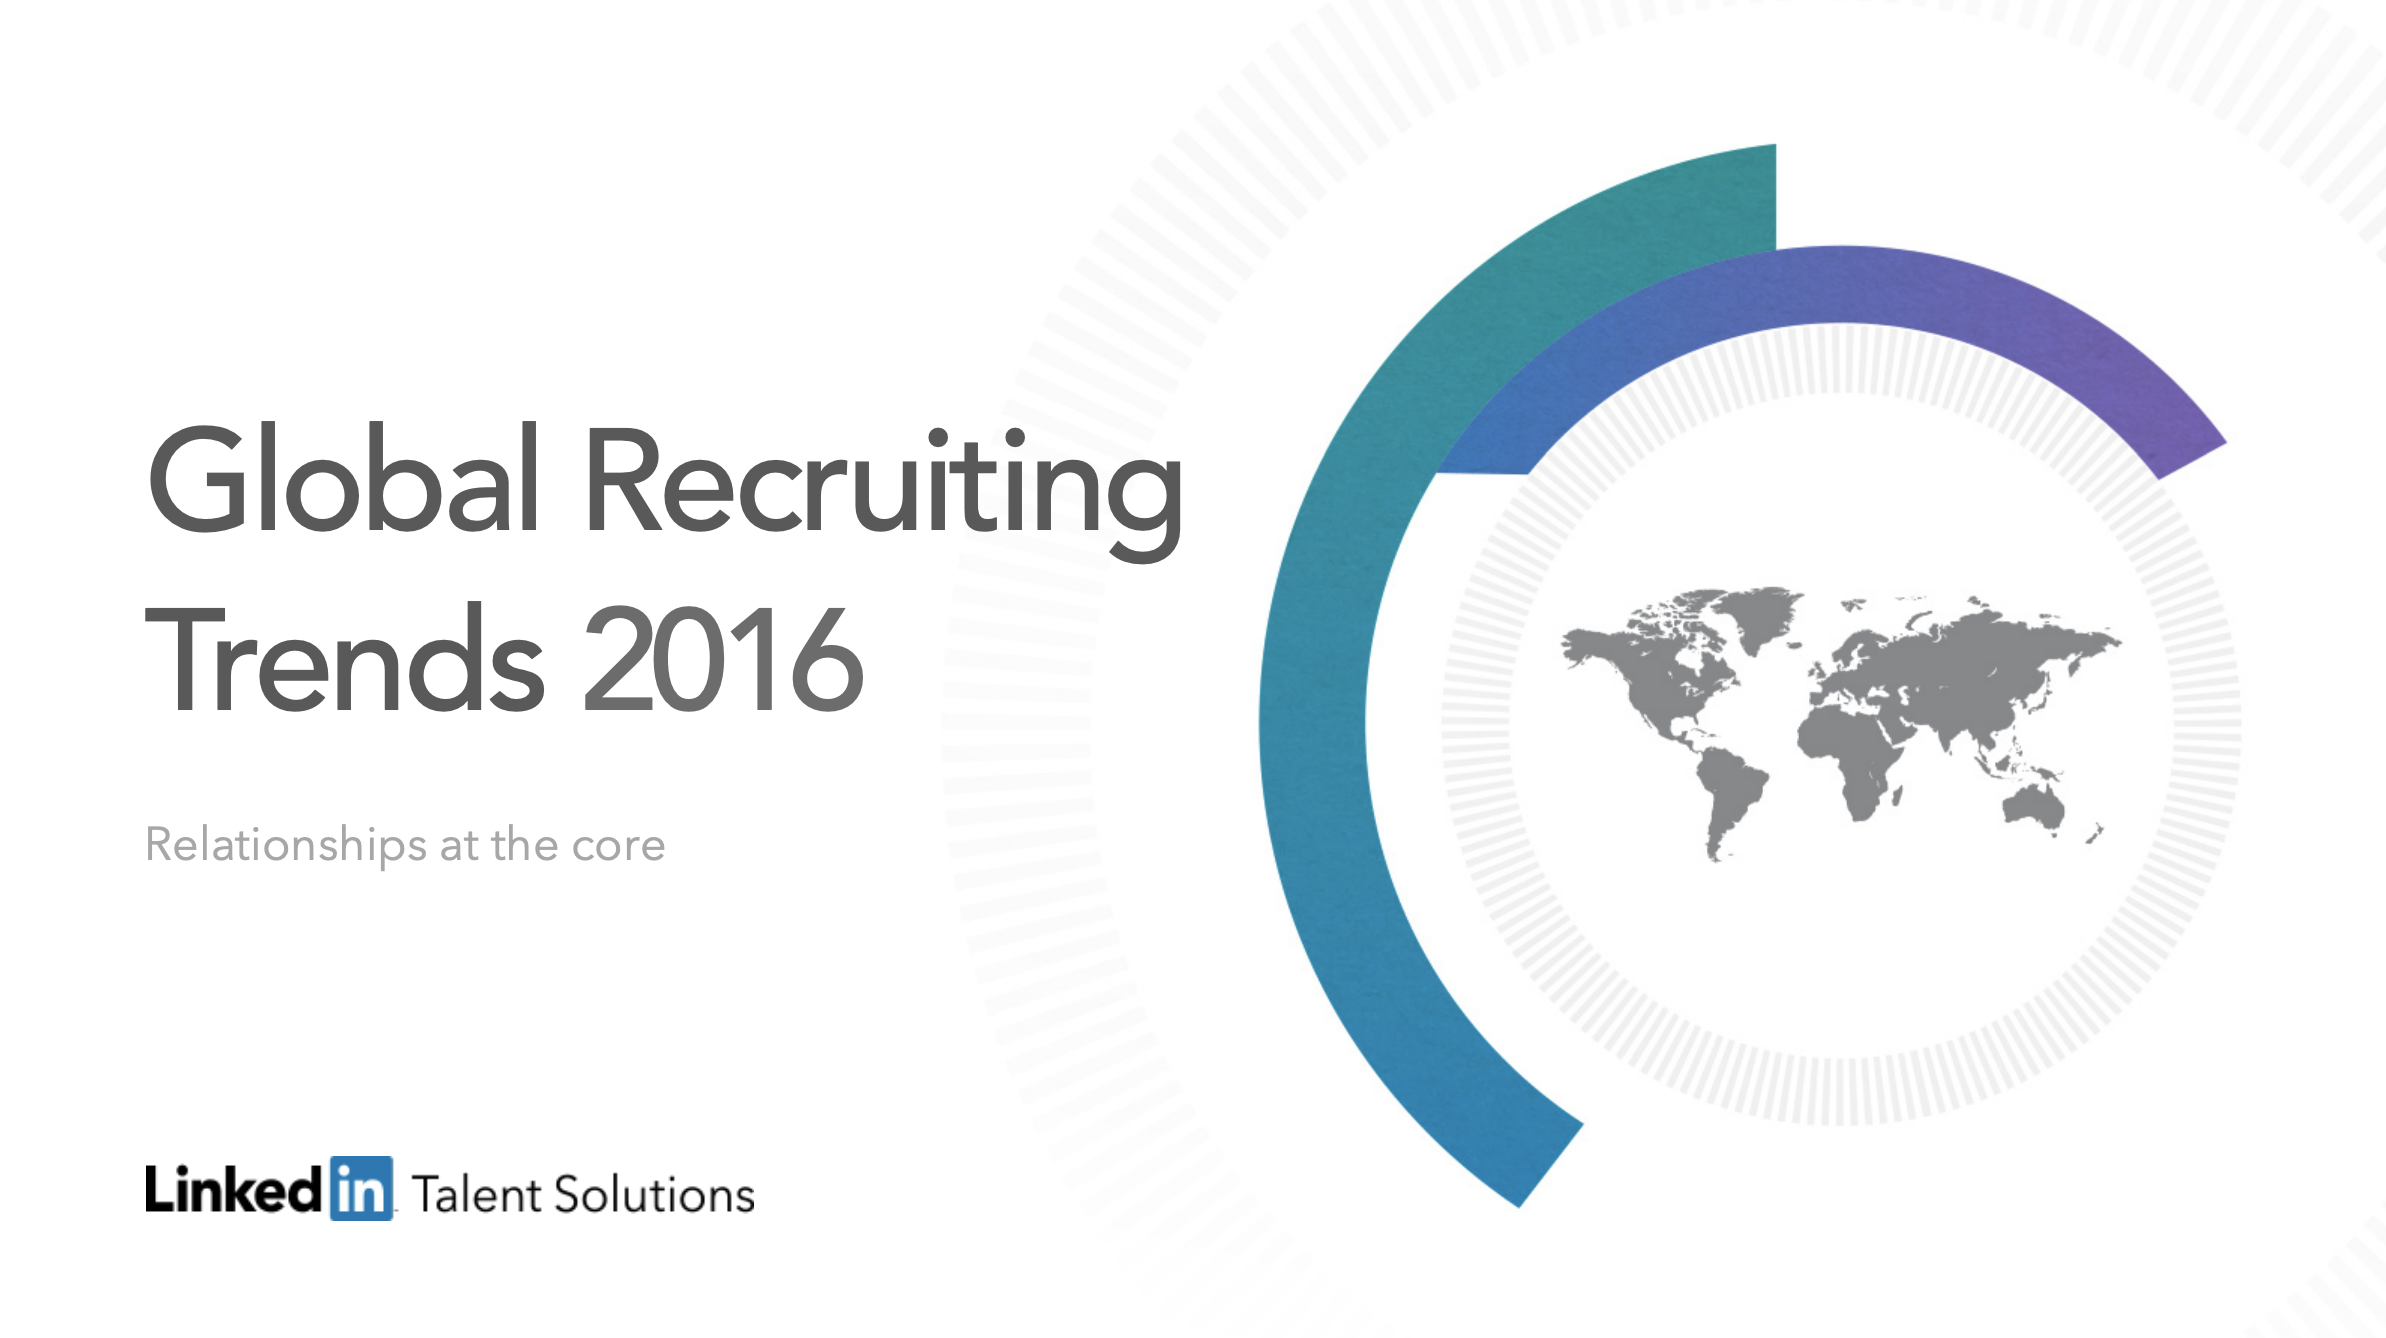 Global Recruiting Trends 2016 | Relationships at the core